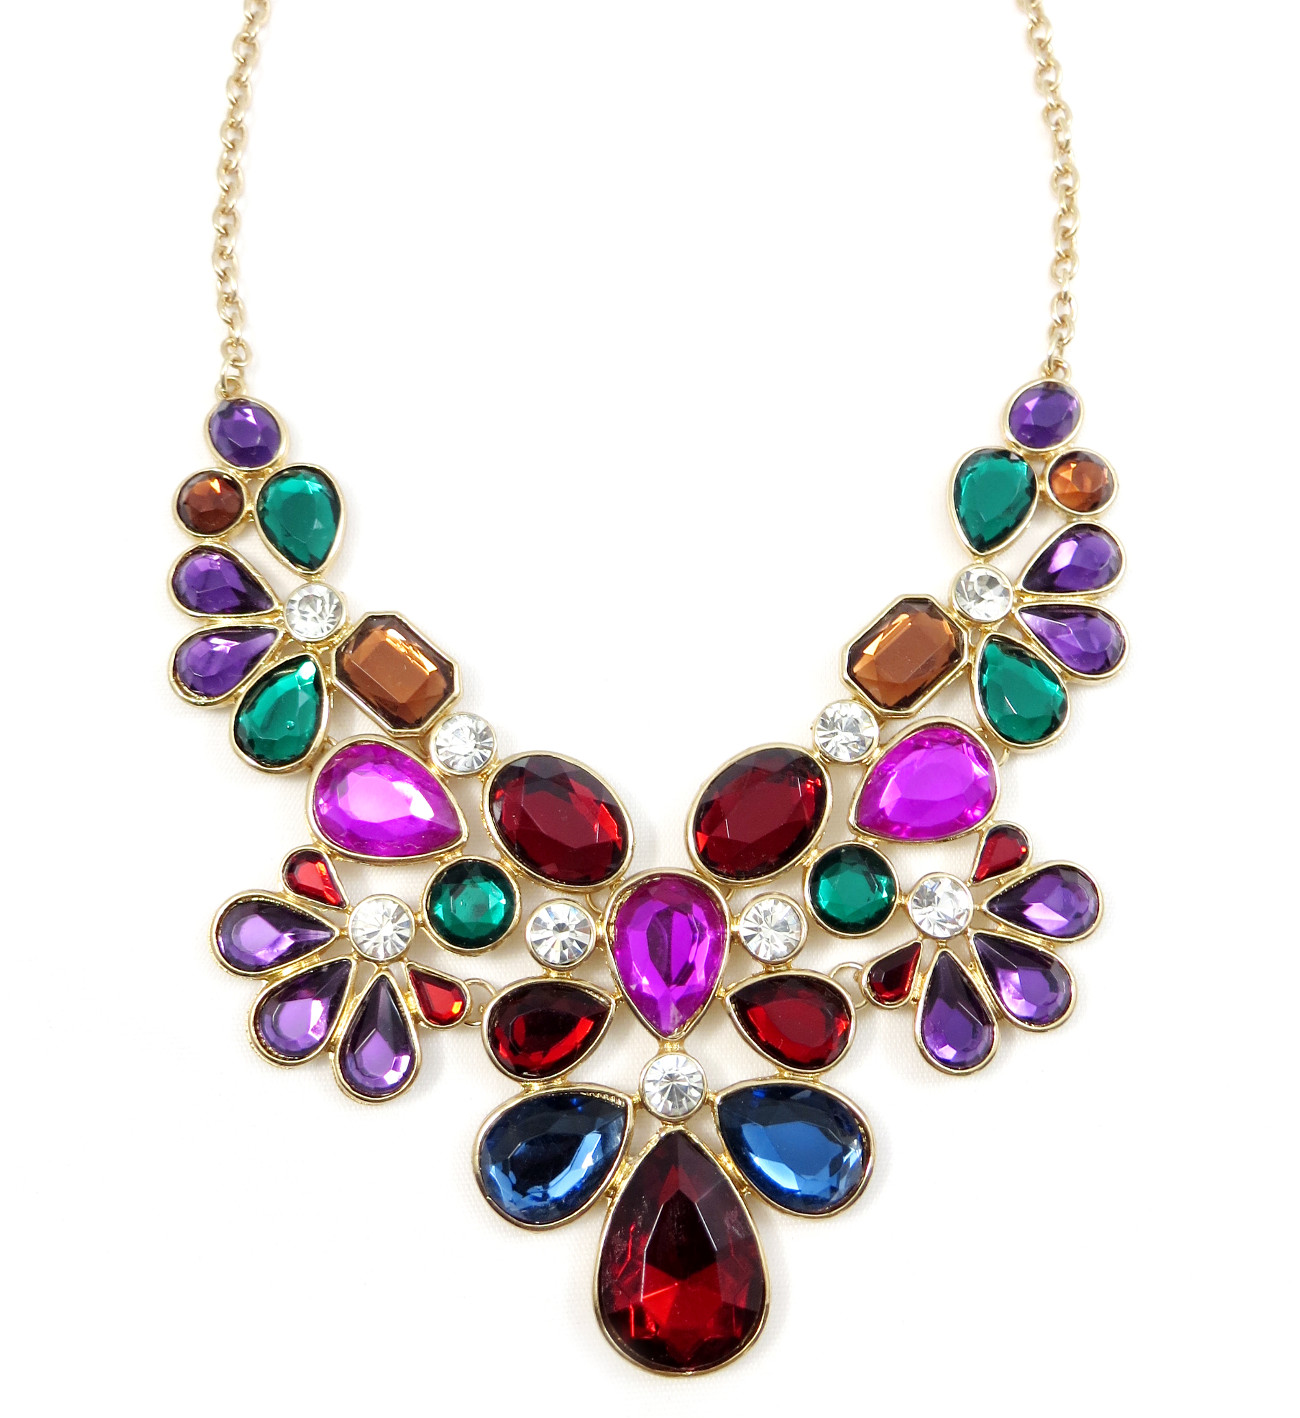 Home ⁄ Necklaces ⁄ Krishna Jewel Toned Gemstone Floral Statement ...